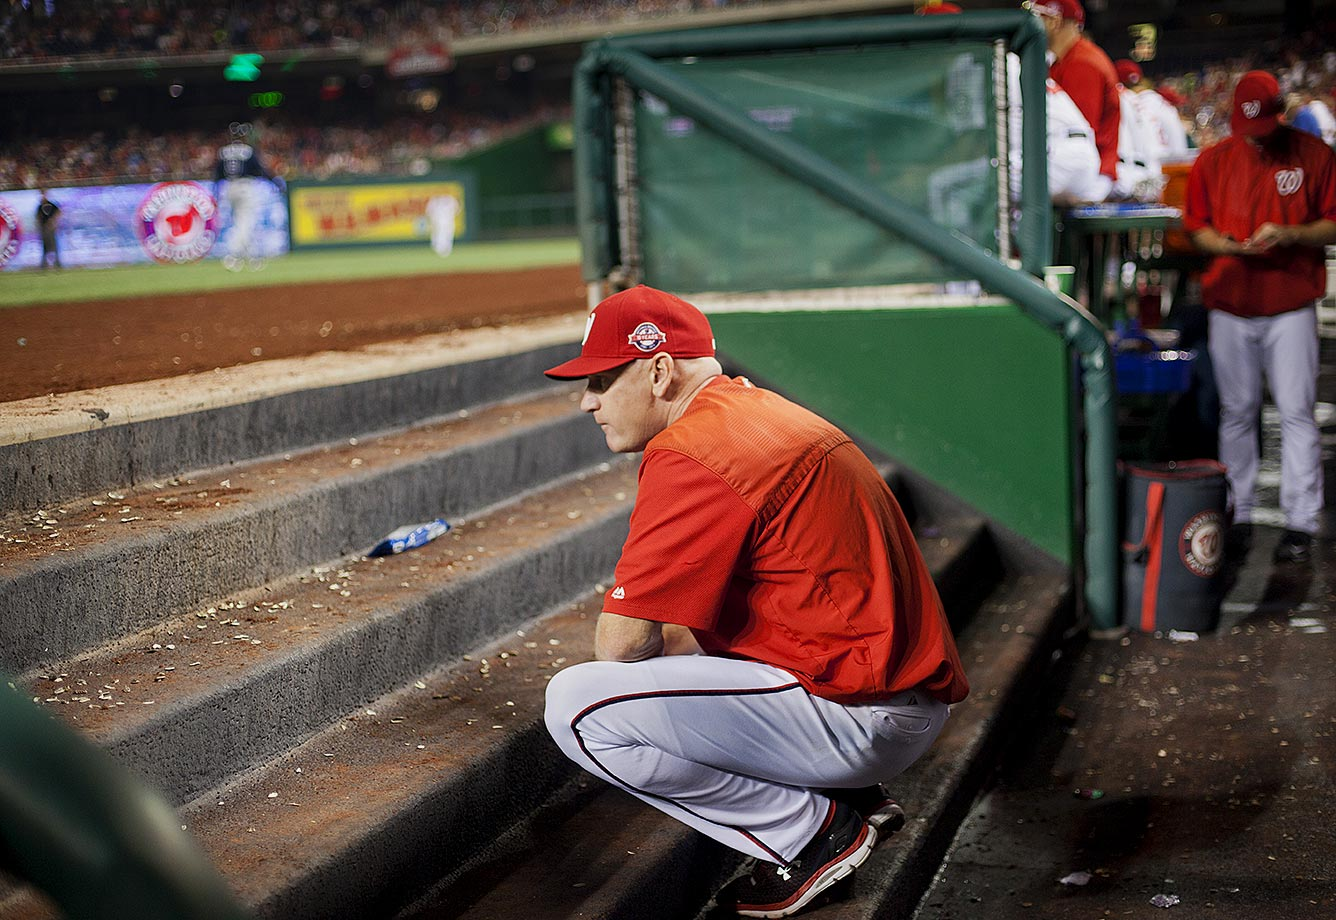 The first victim of the end-of-season MLB purge. Matt Williams was in charge of the most promising team in baseball, but somehow the Washington Nationals couldn't put it together and fell apart in total petulence. Honestly we knew Williams was gone for months now.